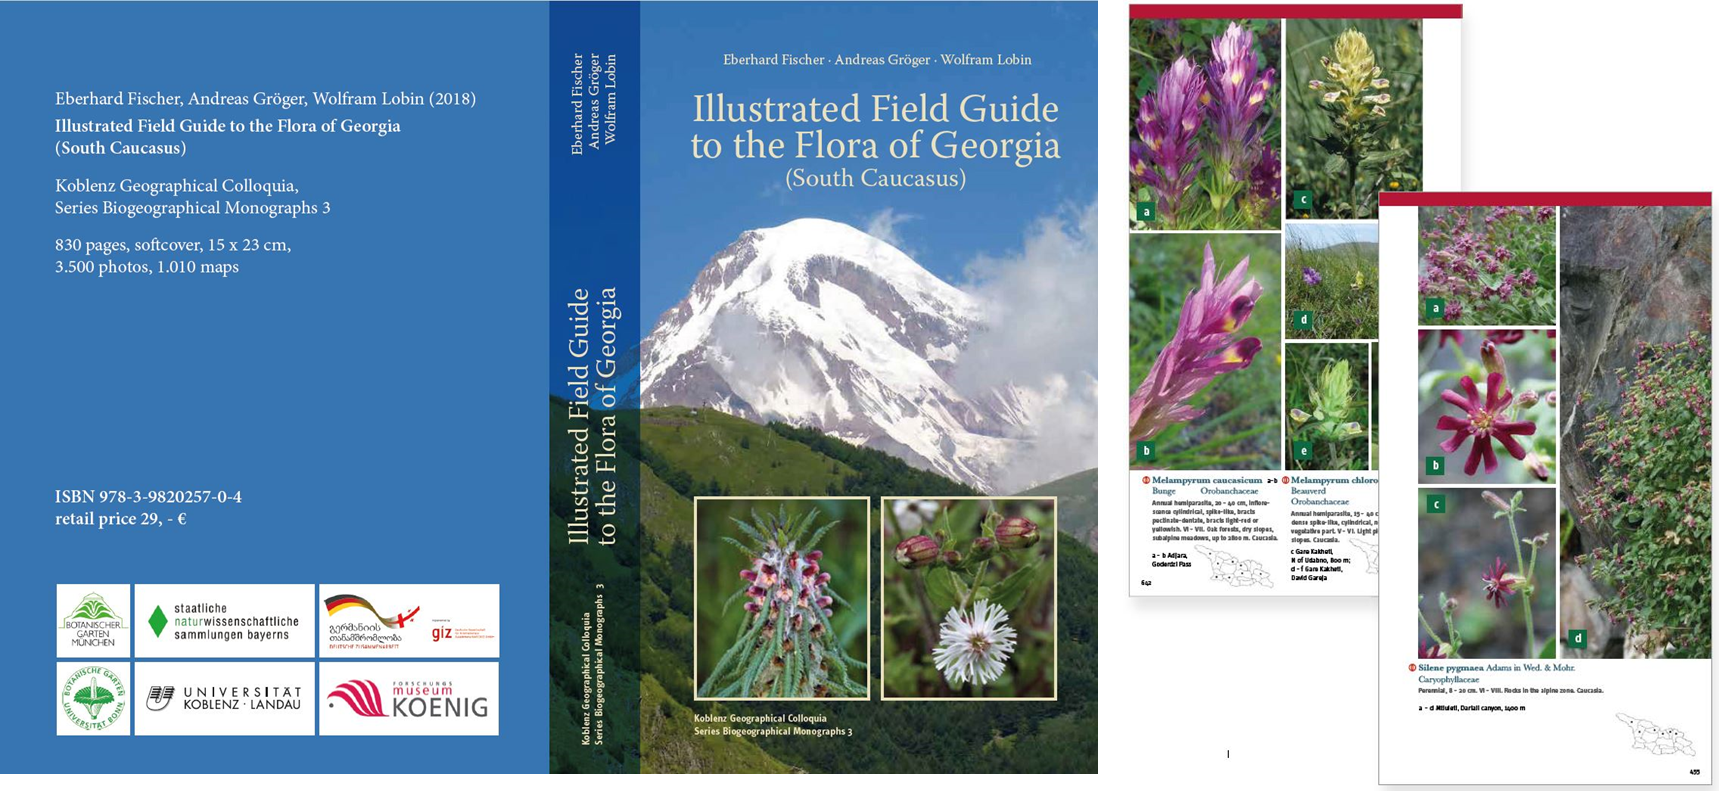 Illustrated Field Guide to Georgian Flora